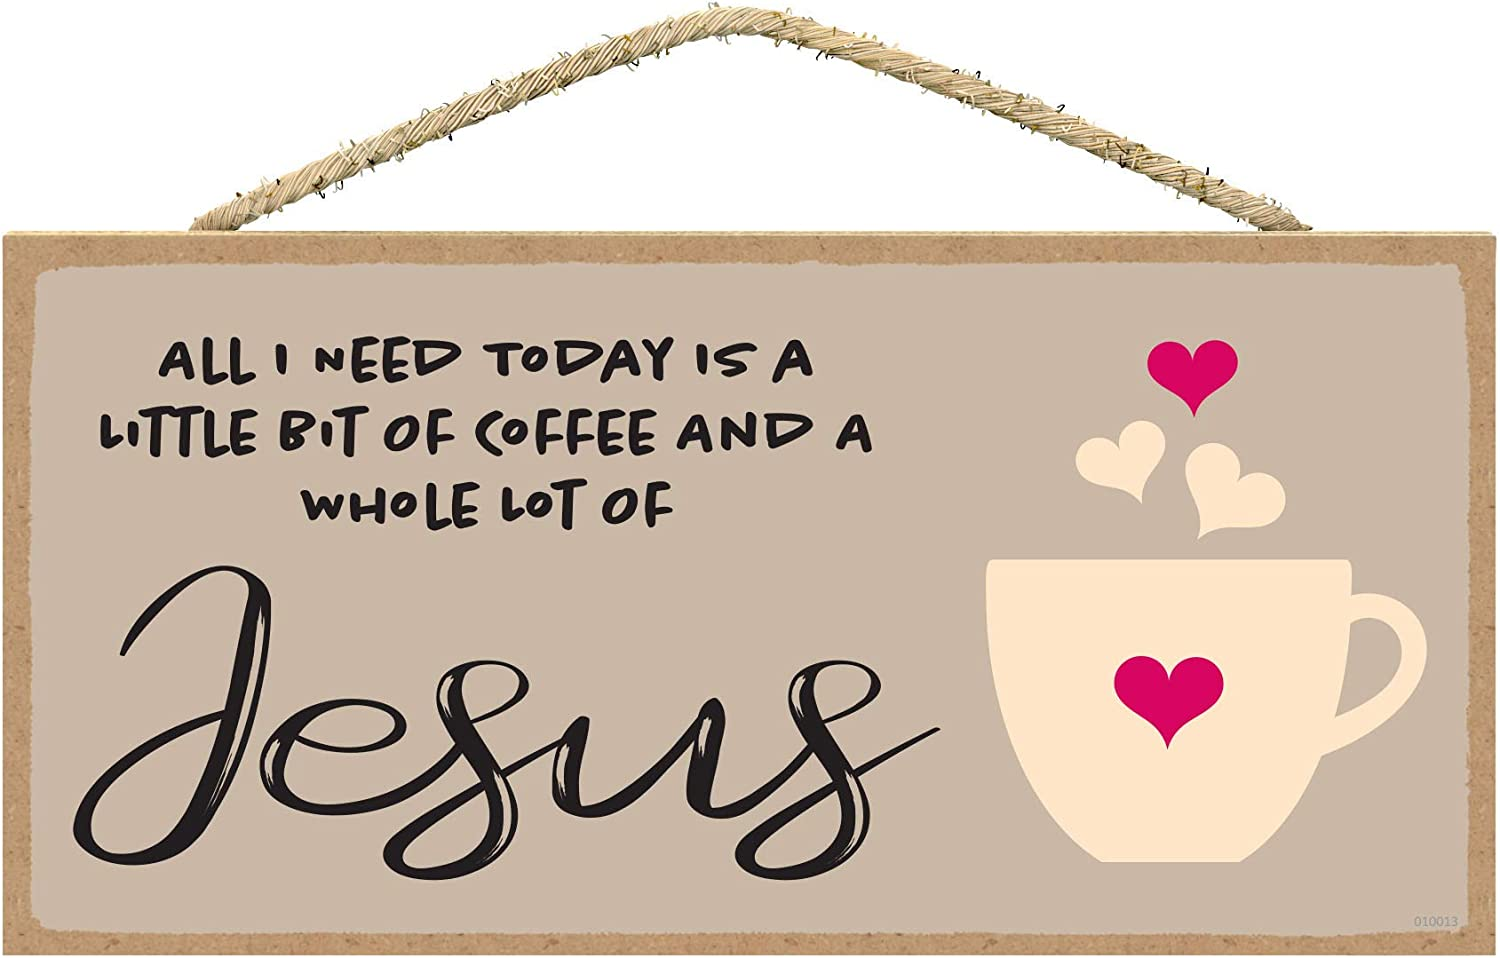 Christian Home Decor - Coffee and Jesus Sign - Need Jesus Coffee Sign 5 x 10 inches - Religious Wall Decor